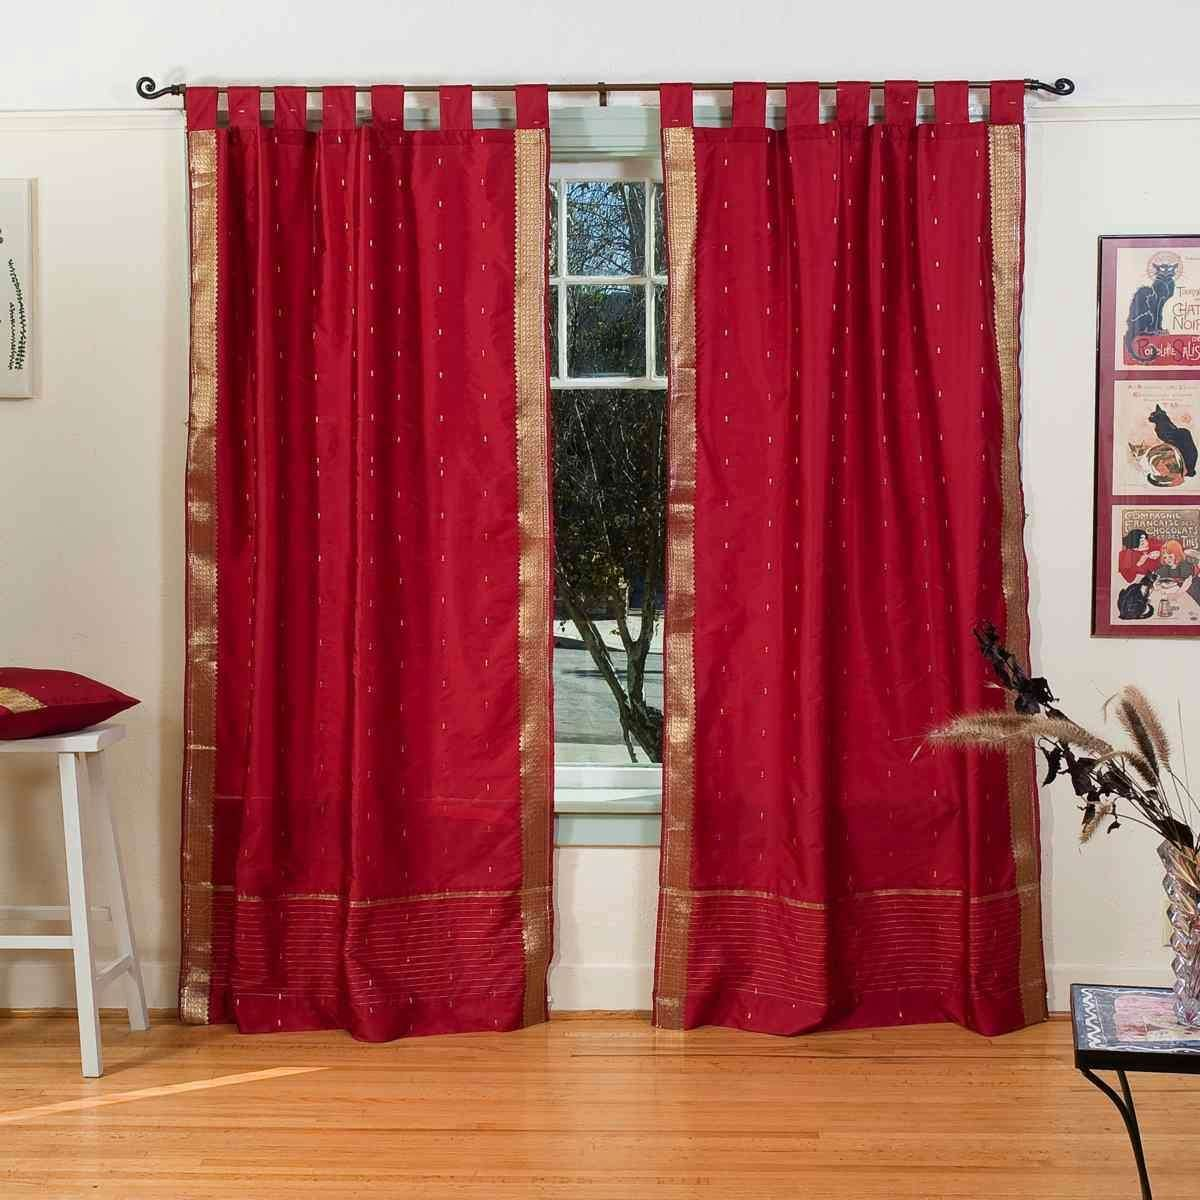 Indian Selections Lined-Maroon Tab Top Sheer Sari Cafe Curtain/Drape - 43W x 24L - Piece